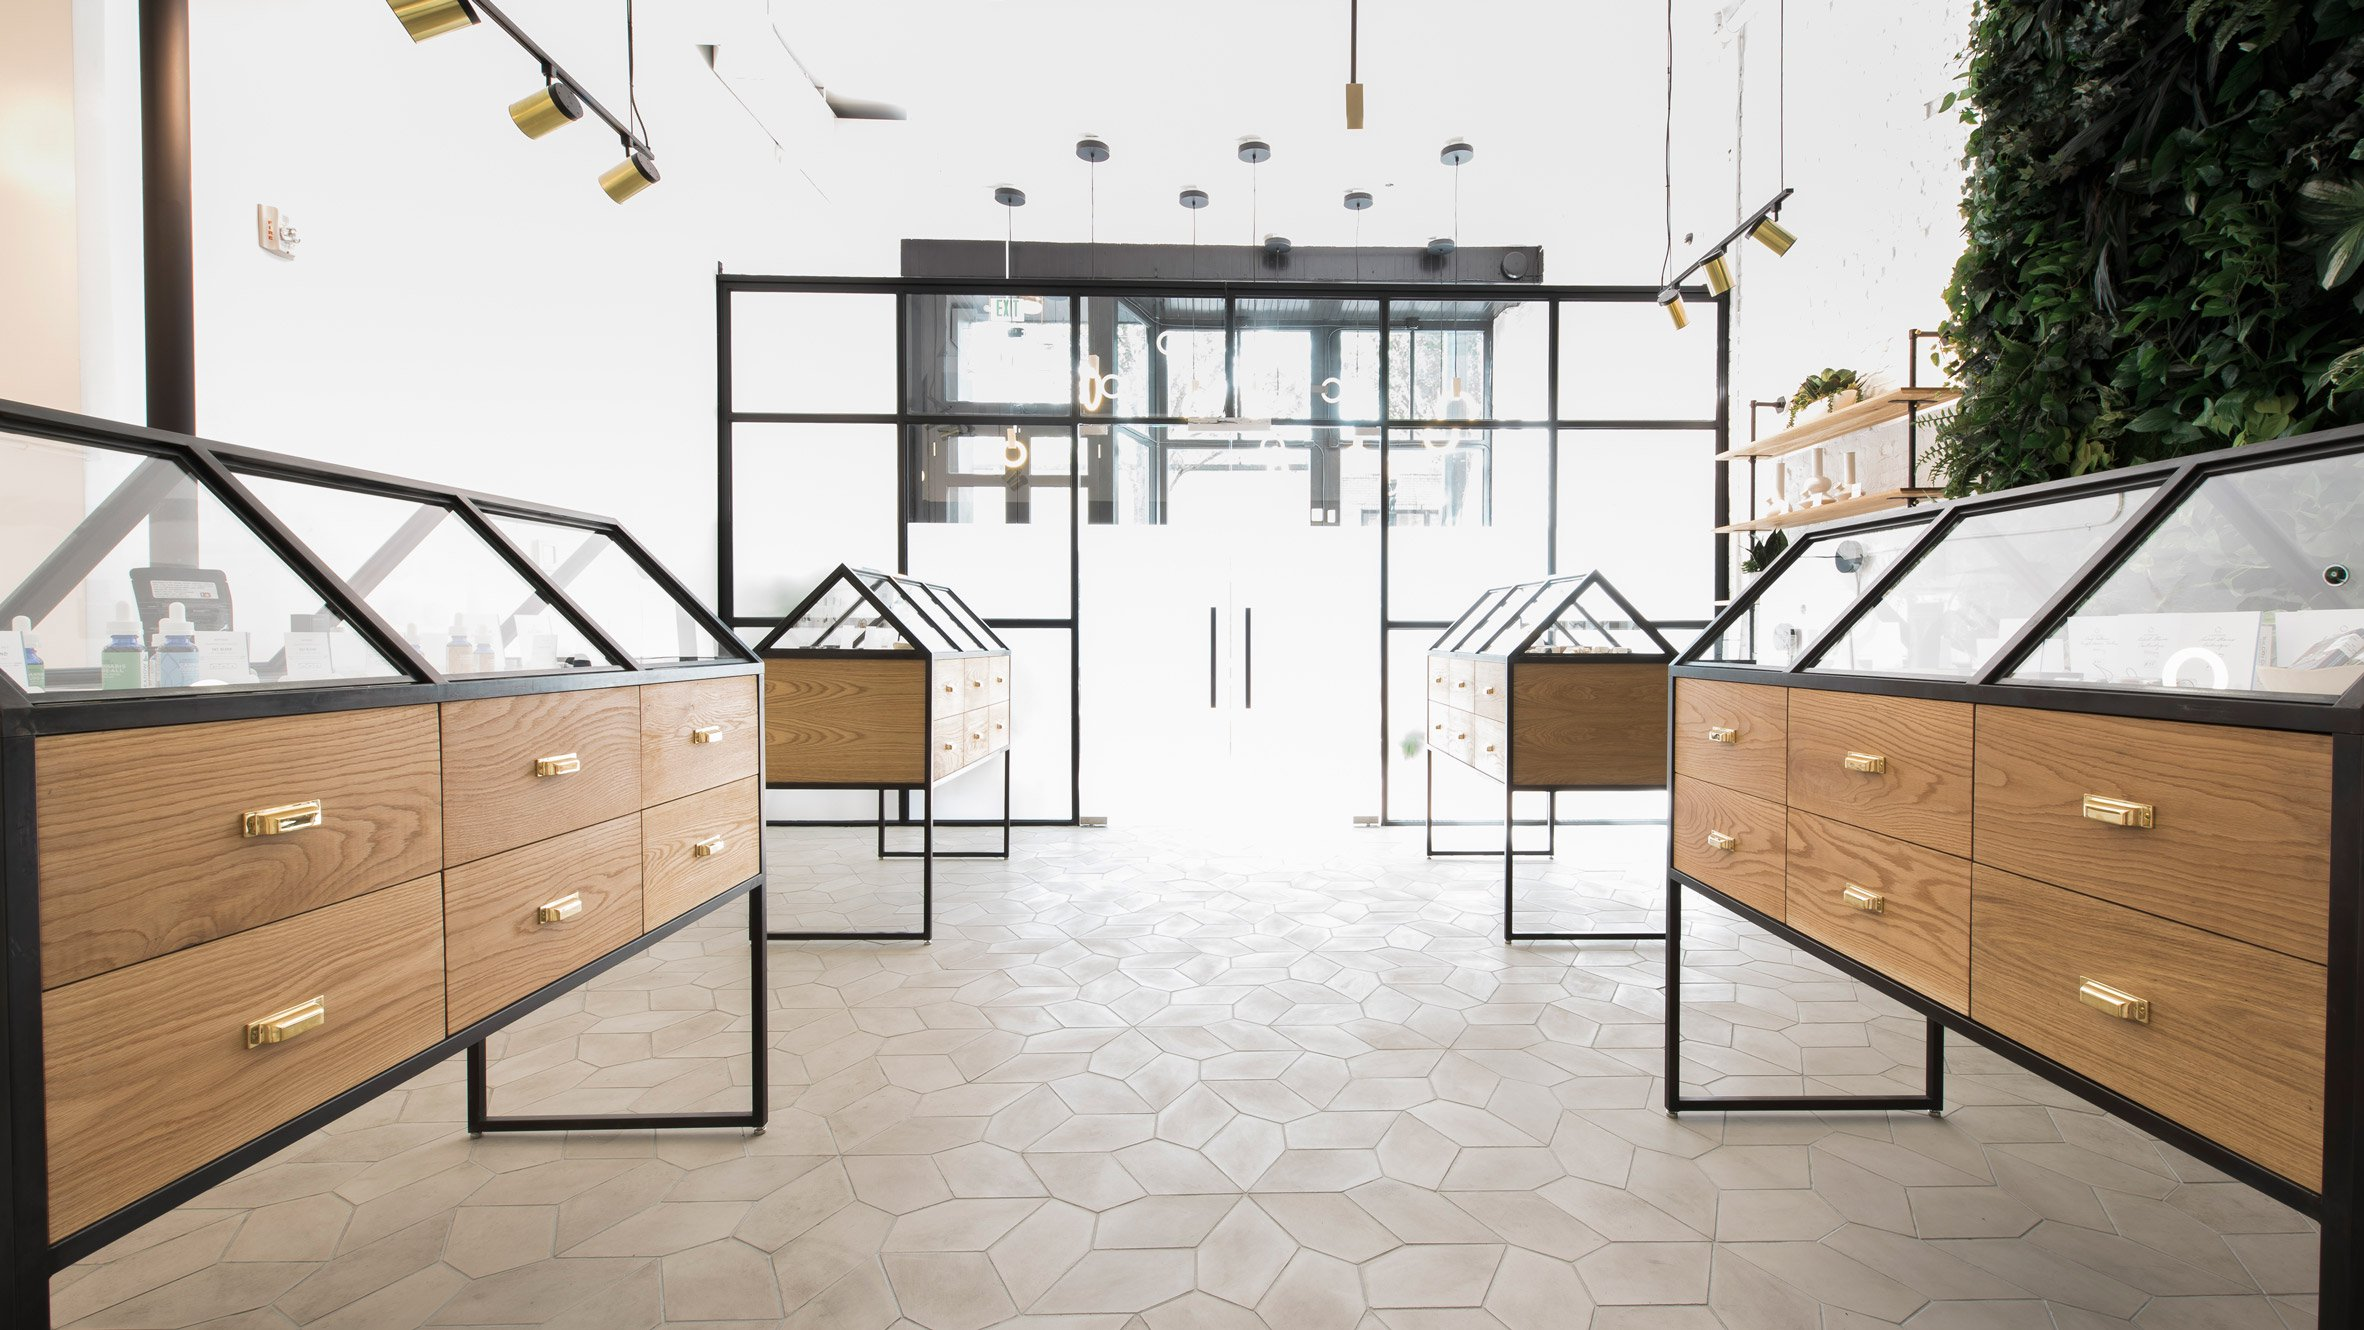 #8A6741 Marijuana Dispensary Goes Minimalist In Portland Curbed with 2364x1330 px of Most Effective Glass Display Cases Portland Oregon 13302364 wallpaper @ avoidforclosure.info